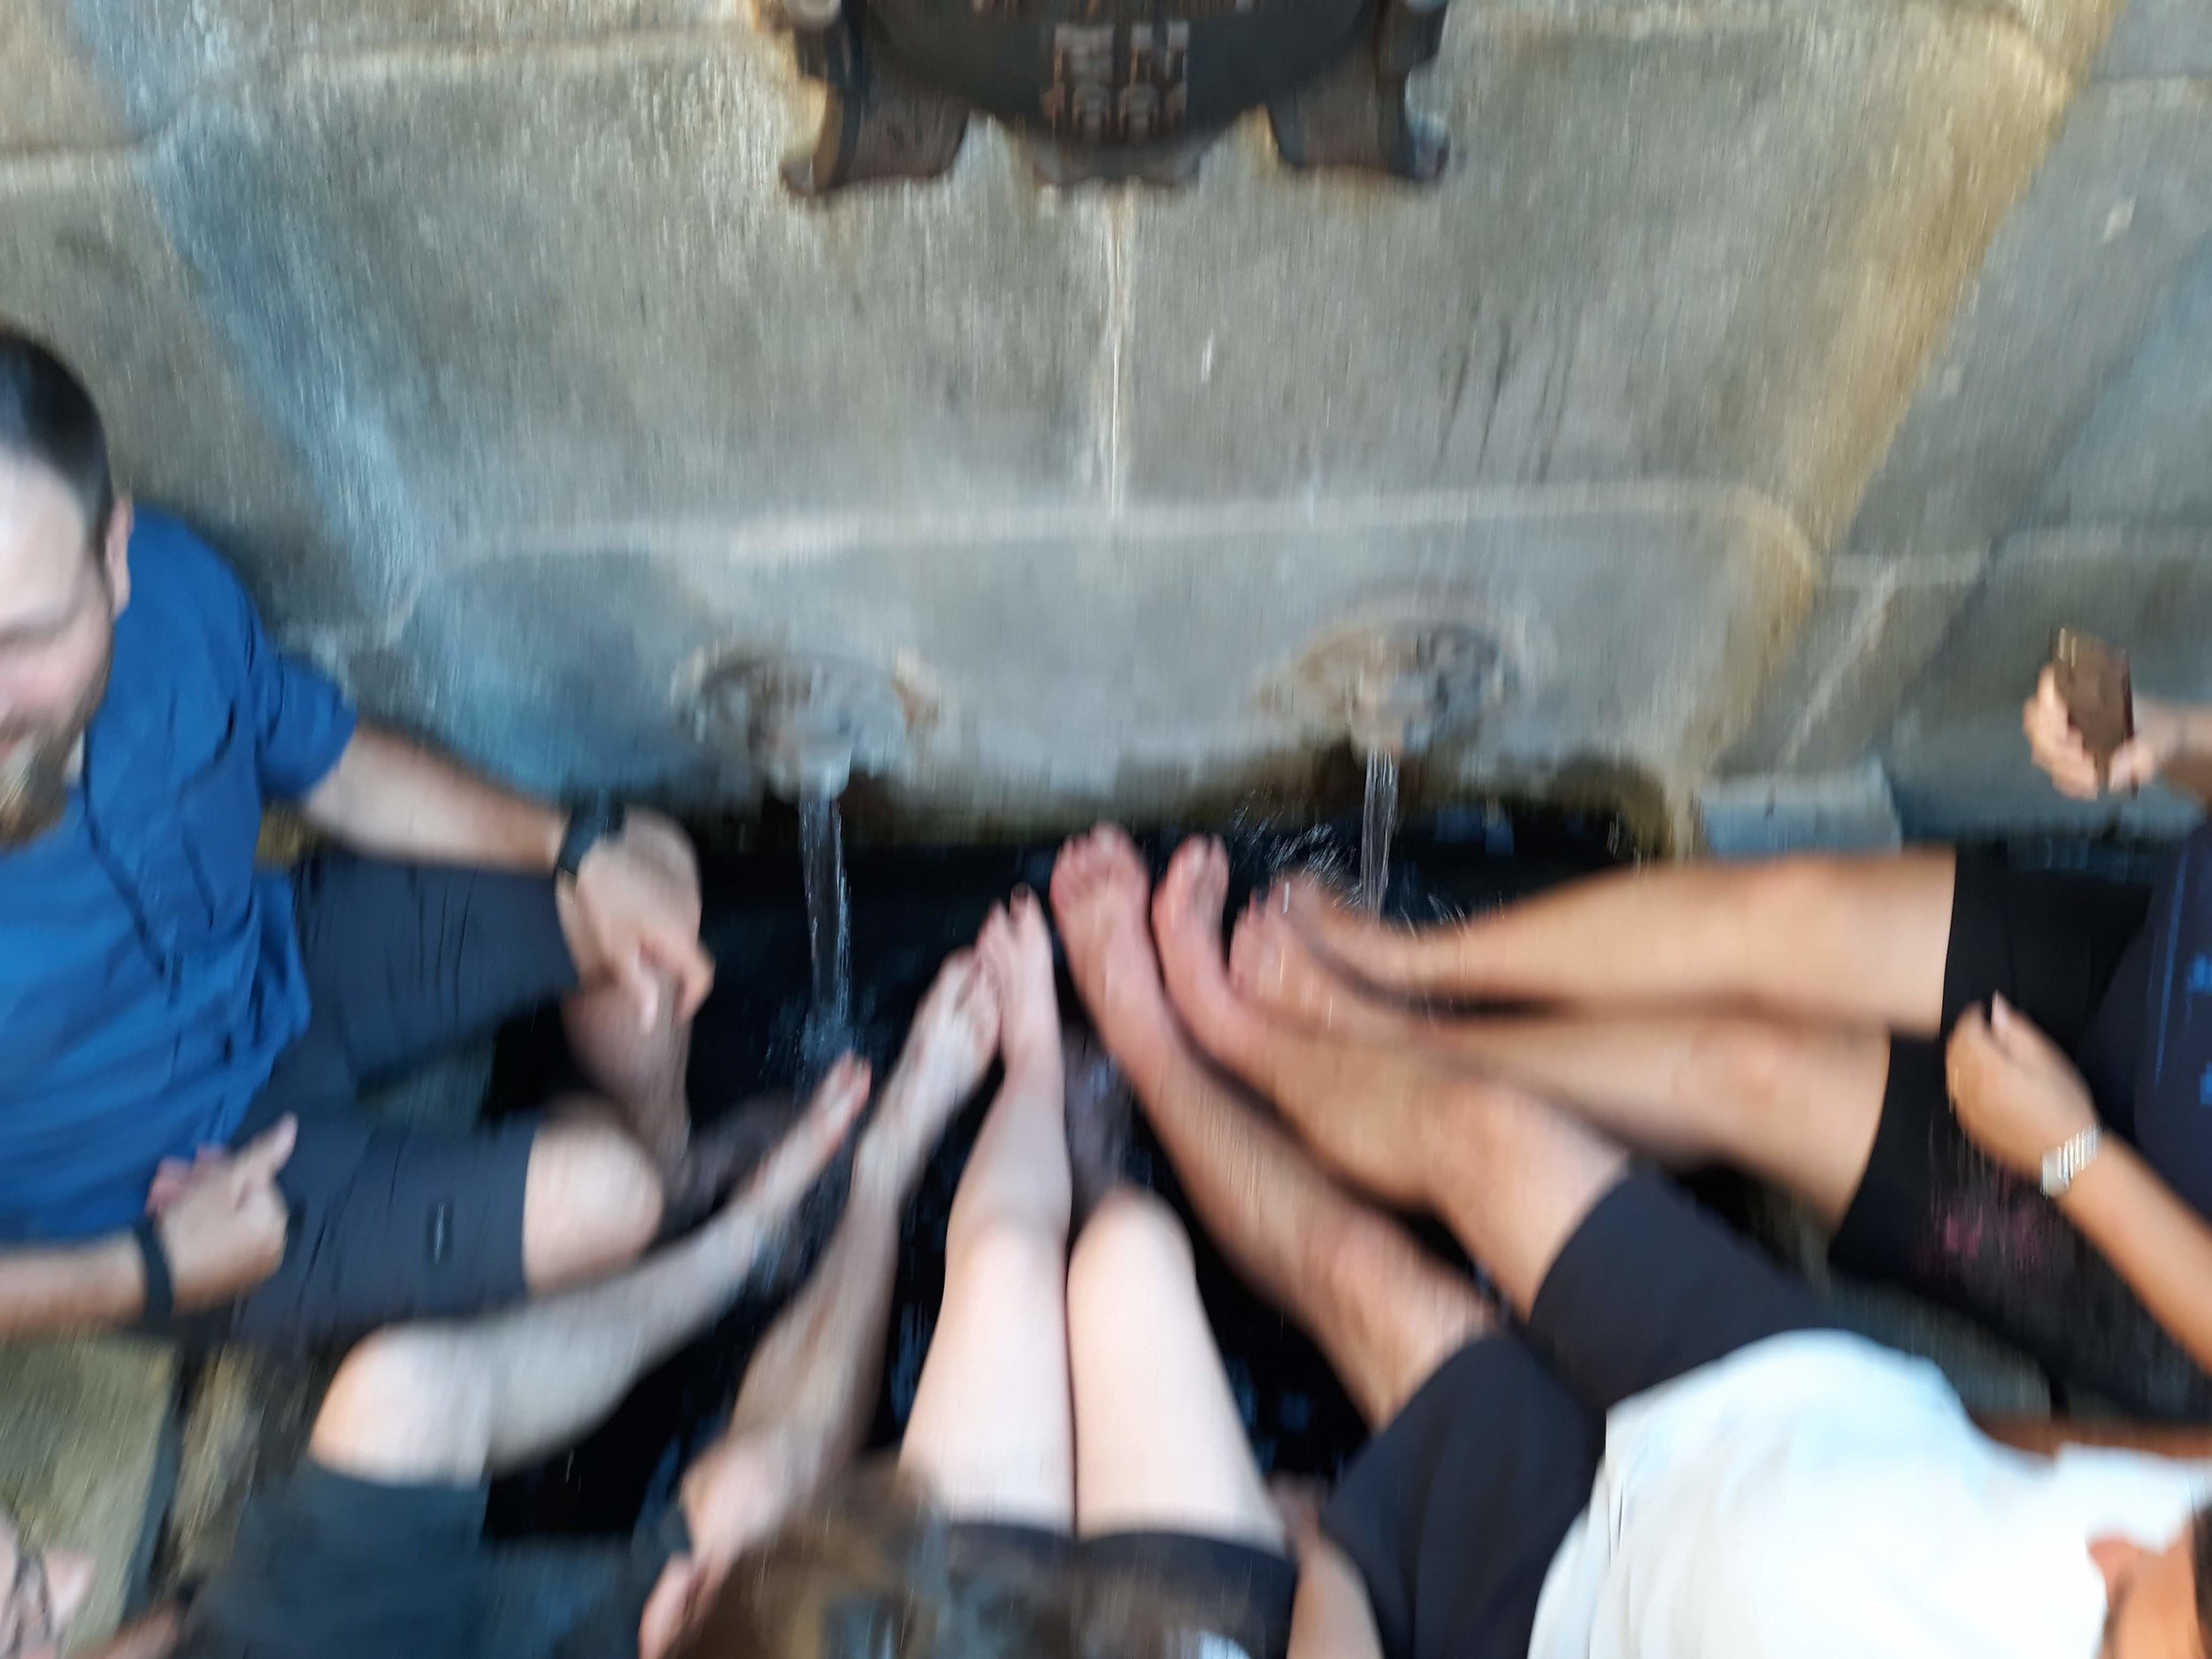 Bathing our feet in the thermal springs at Caldas des Reyes